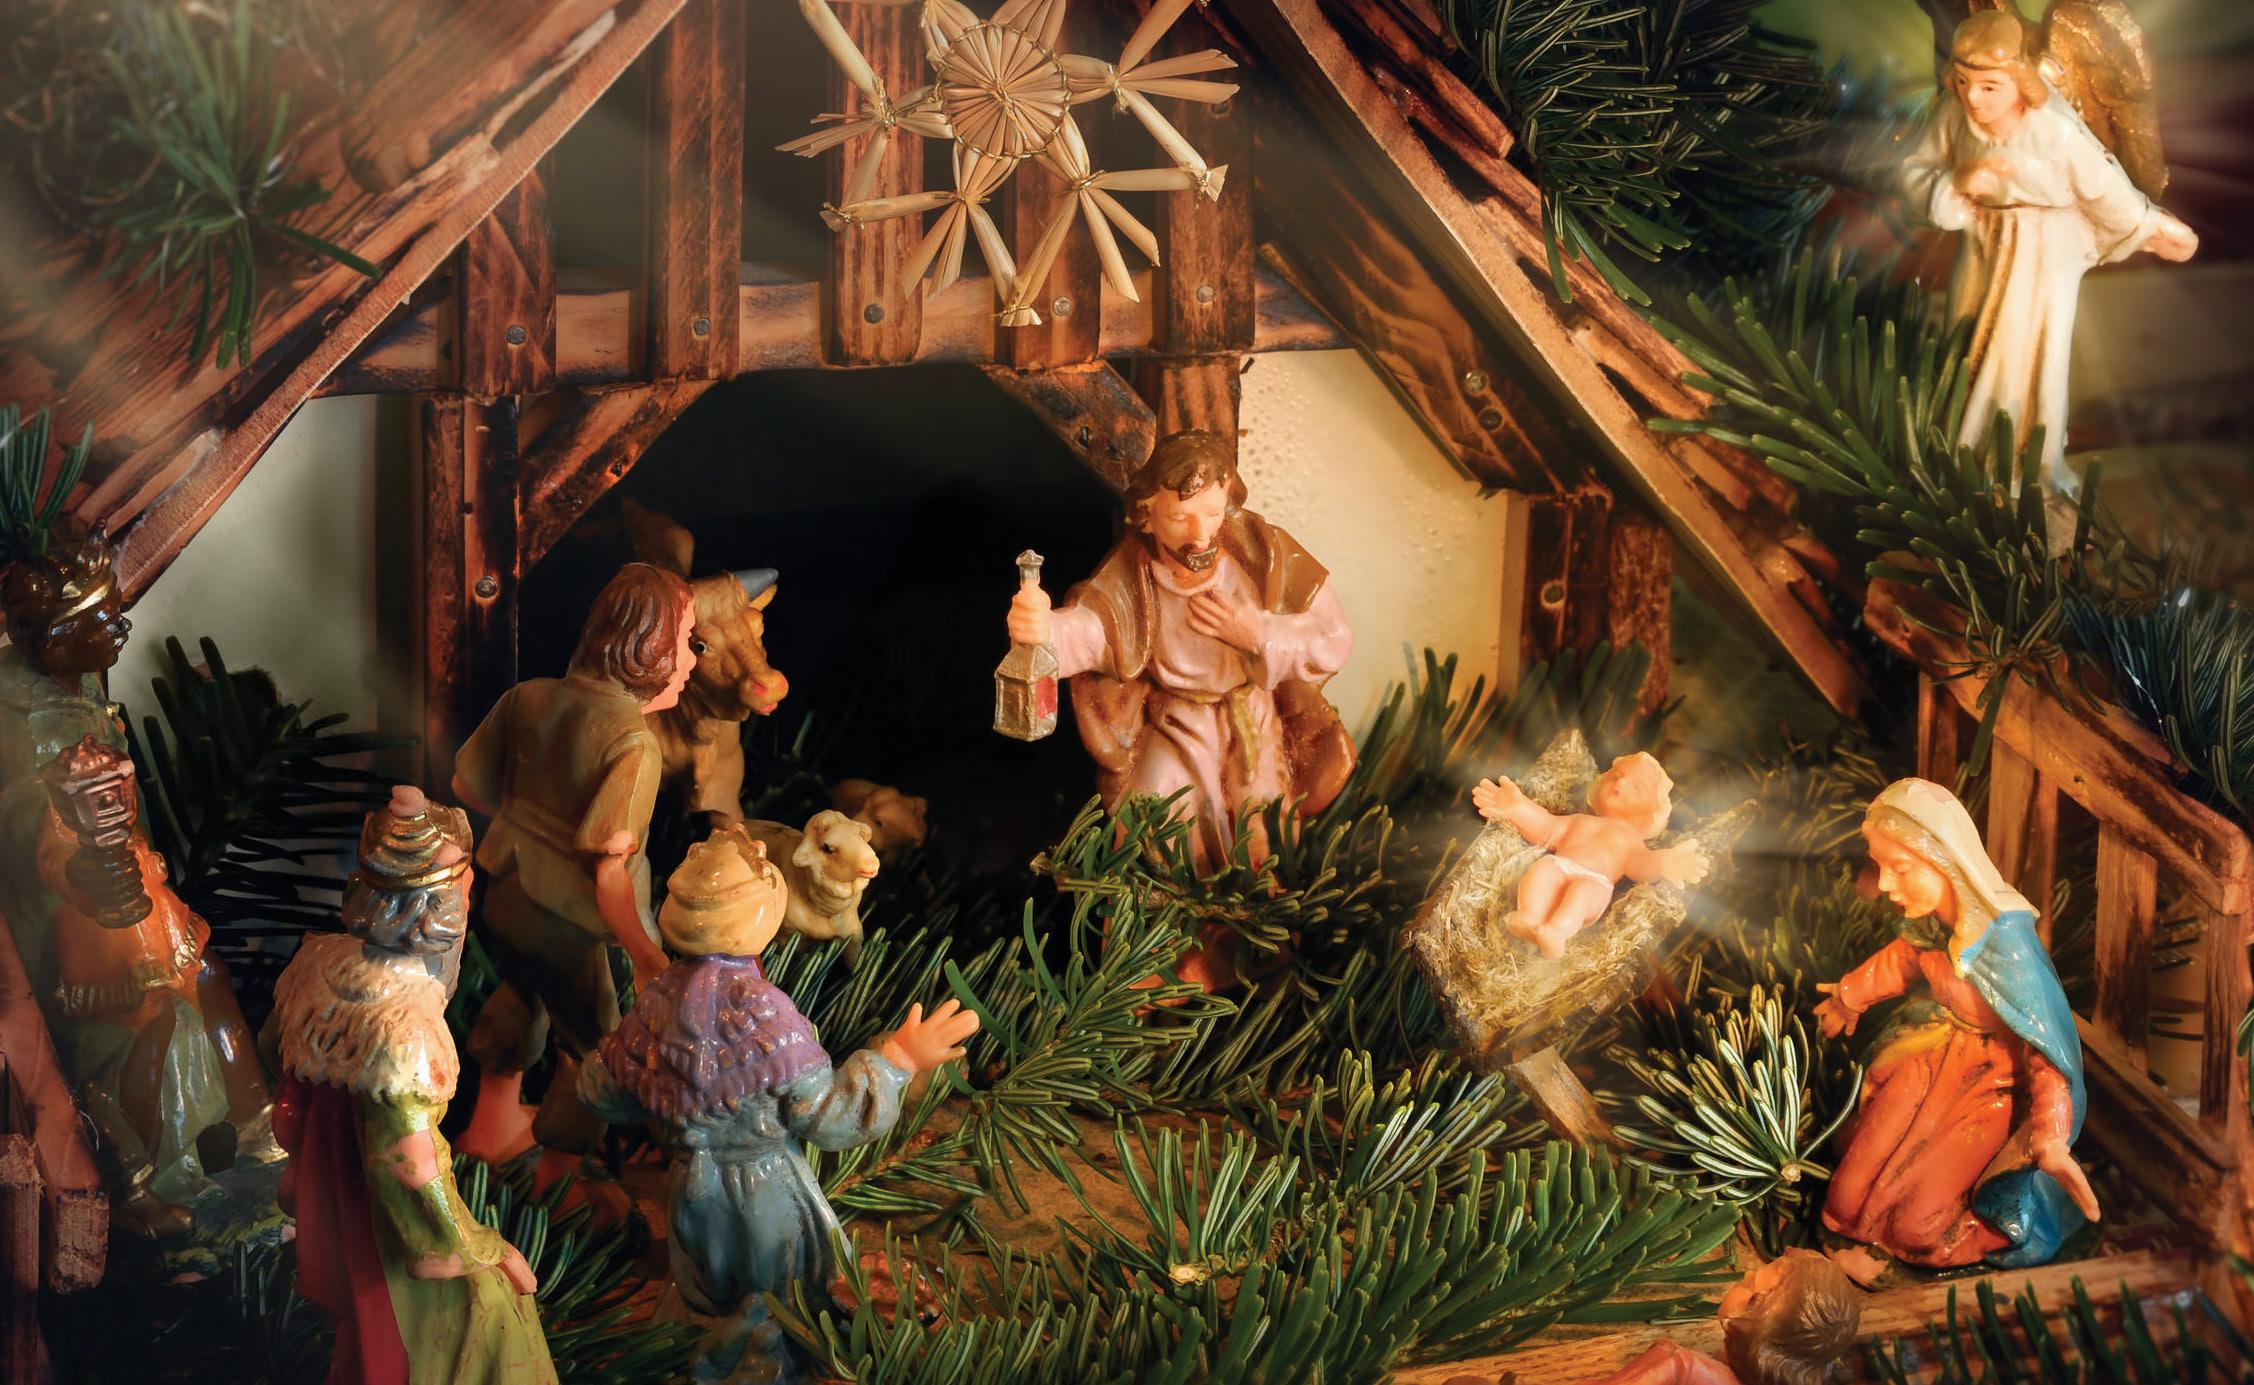 Page 6 of The Origin and Beauty of the Nativity Scene